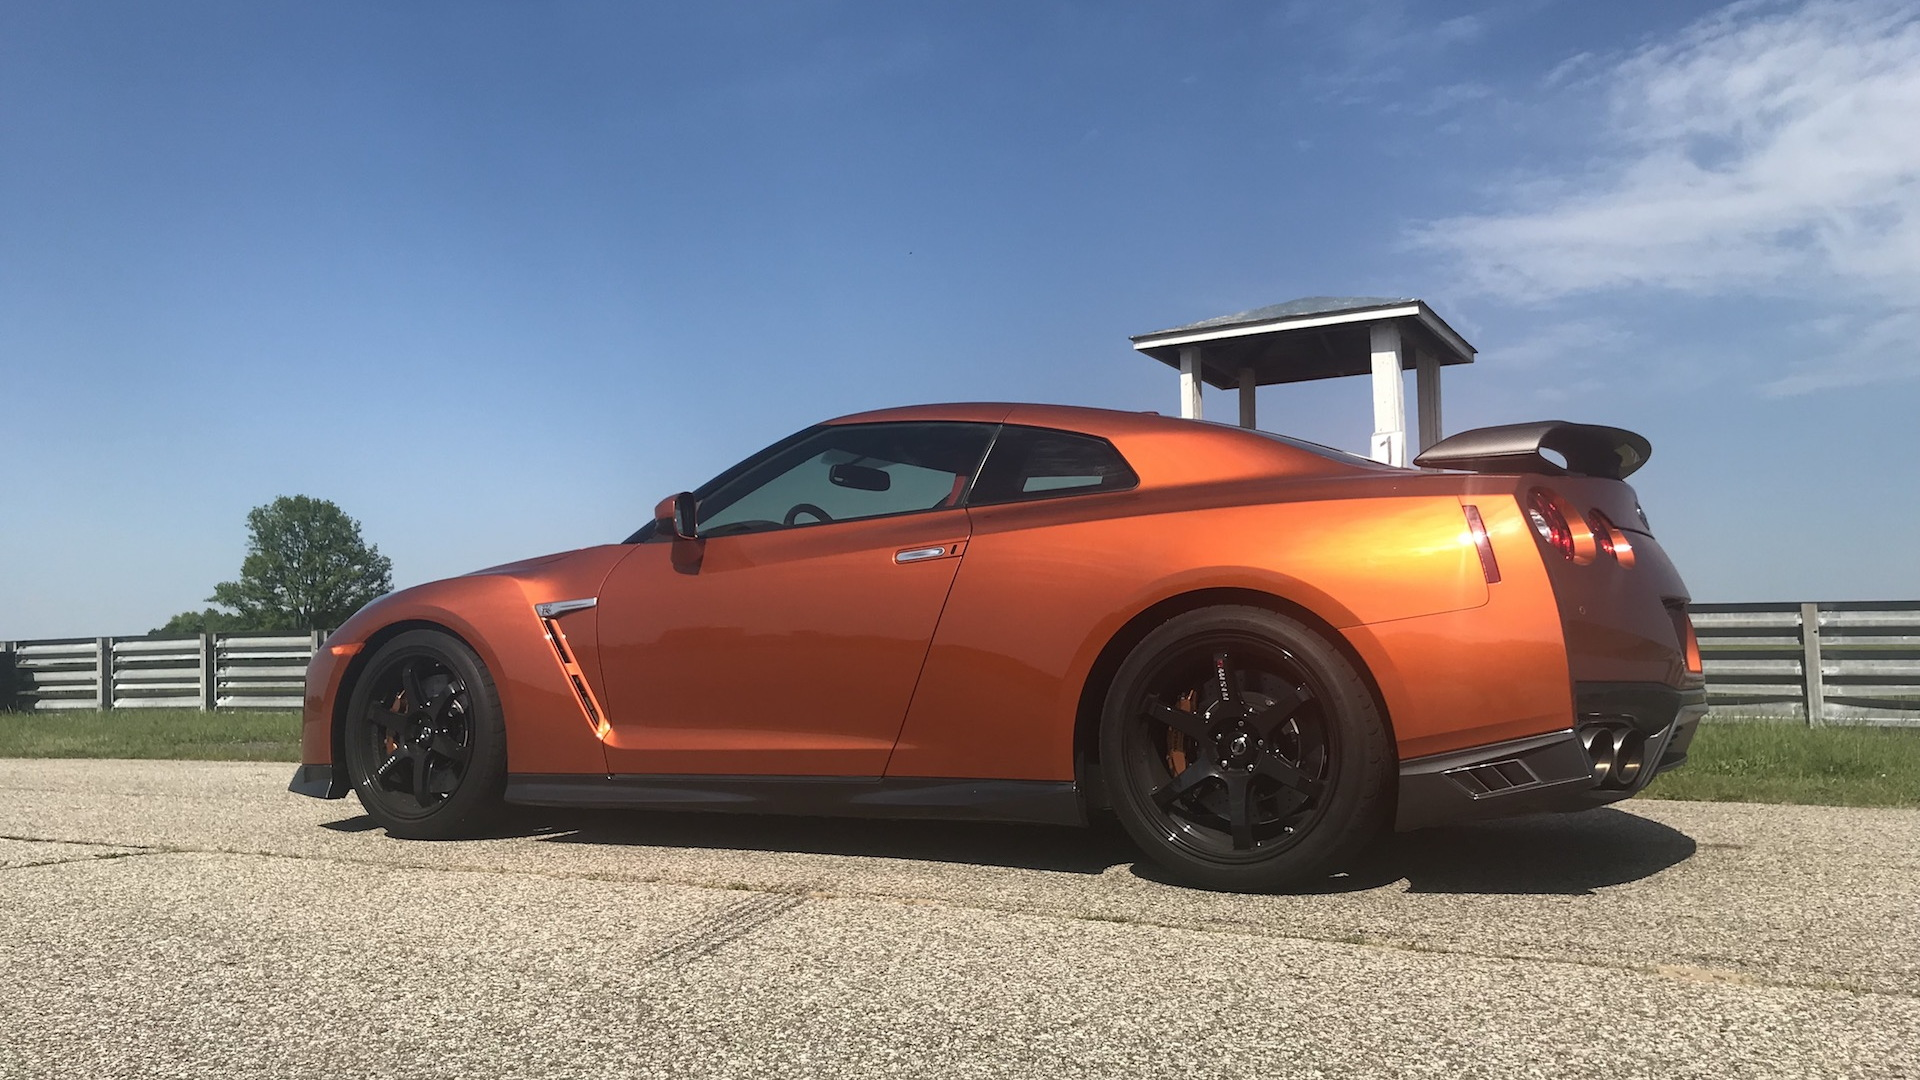 2018 Nissan GT-R Track Edition, Gingerman Raceway, May 2018